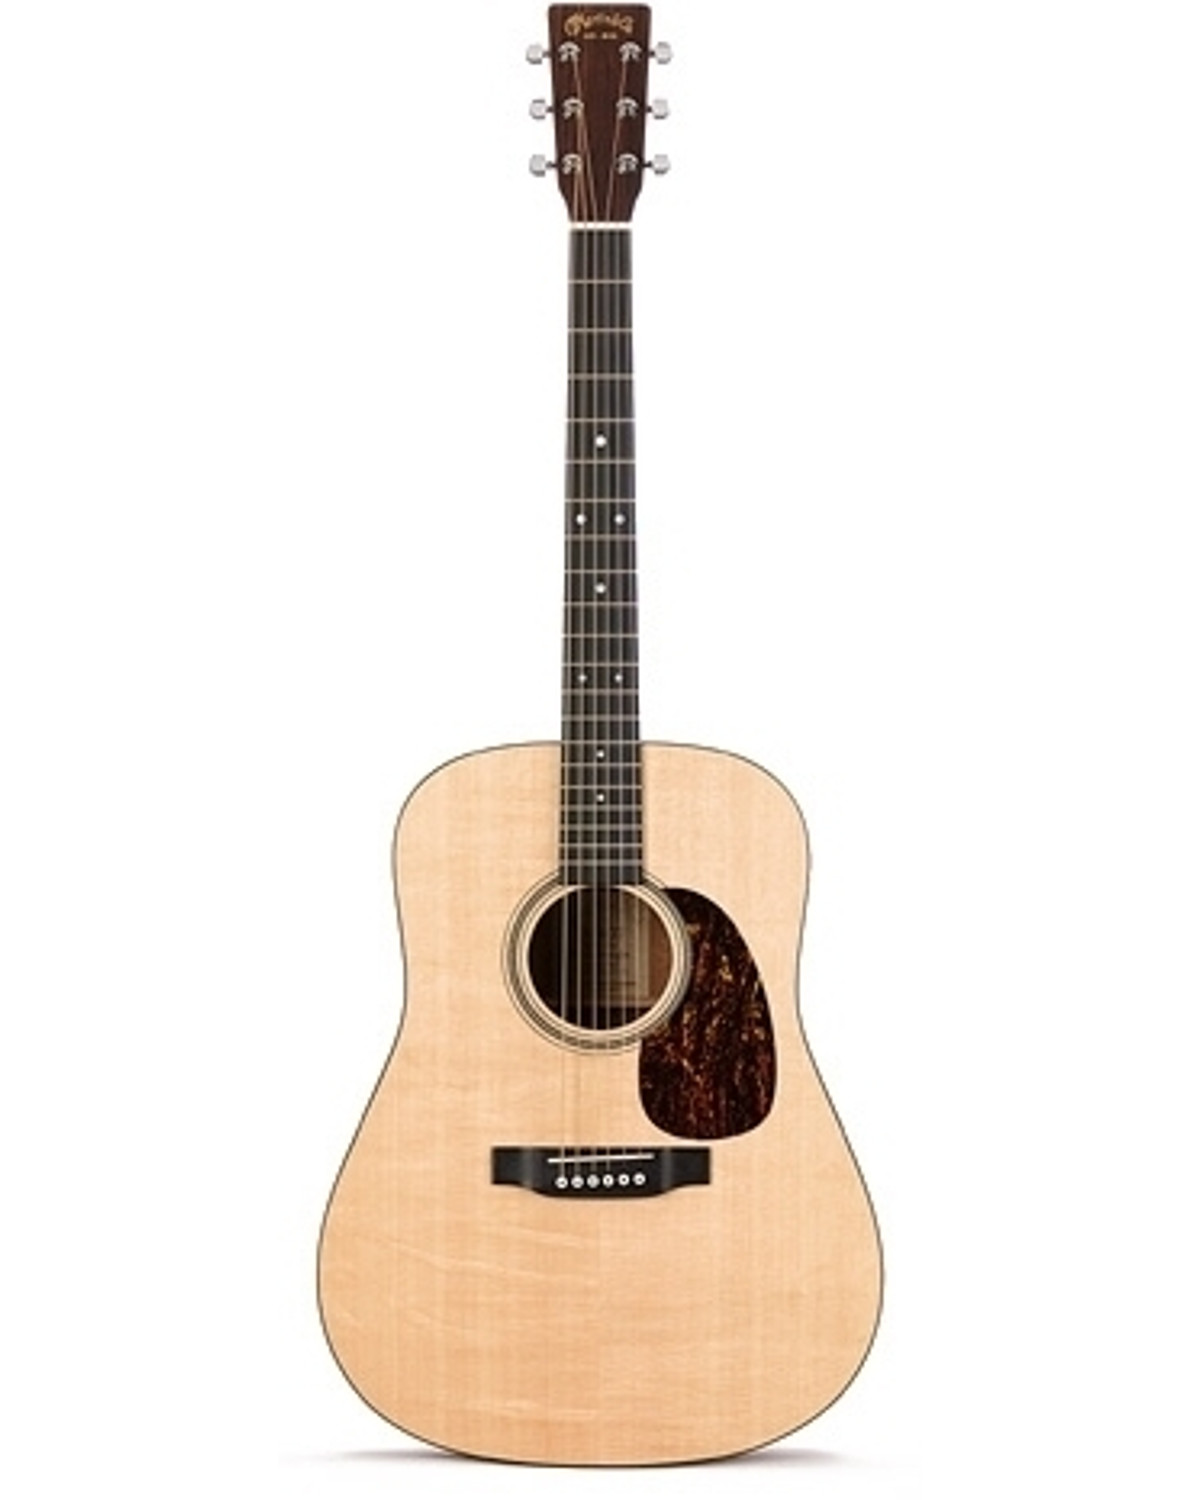 Martin D16GT Dreadnought Acoustic Guitar